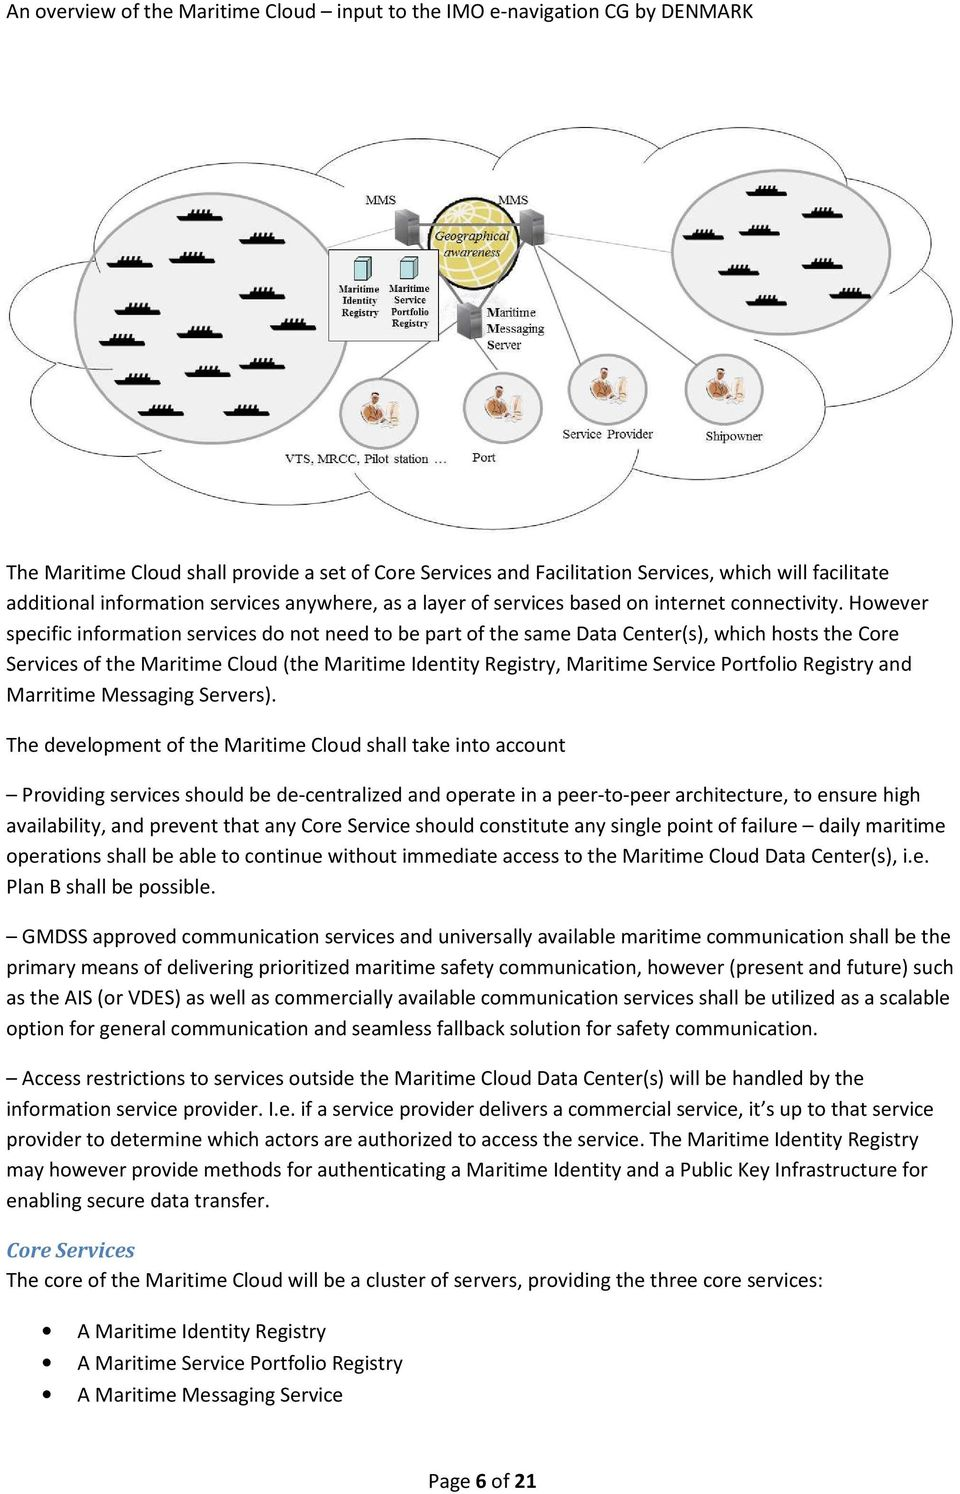 However specific information services do not need to be part of the same Data Center(s), which hosts the Core Services of the Maritime Cloud (the Maritime Identity Registry, Maritime Service